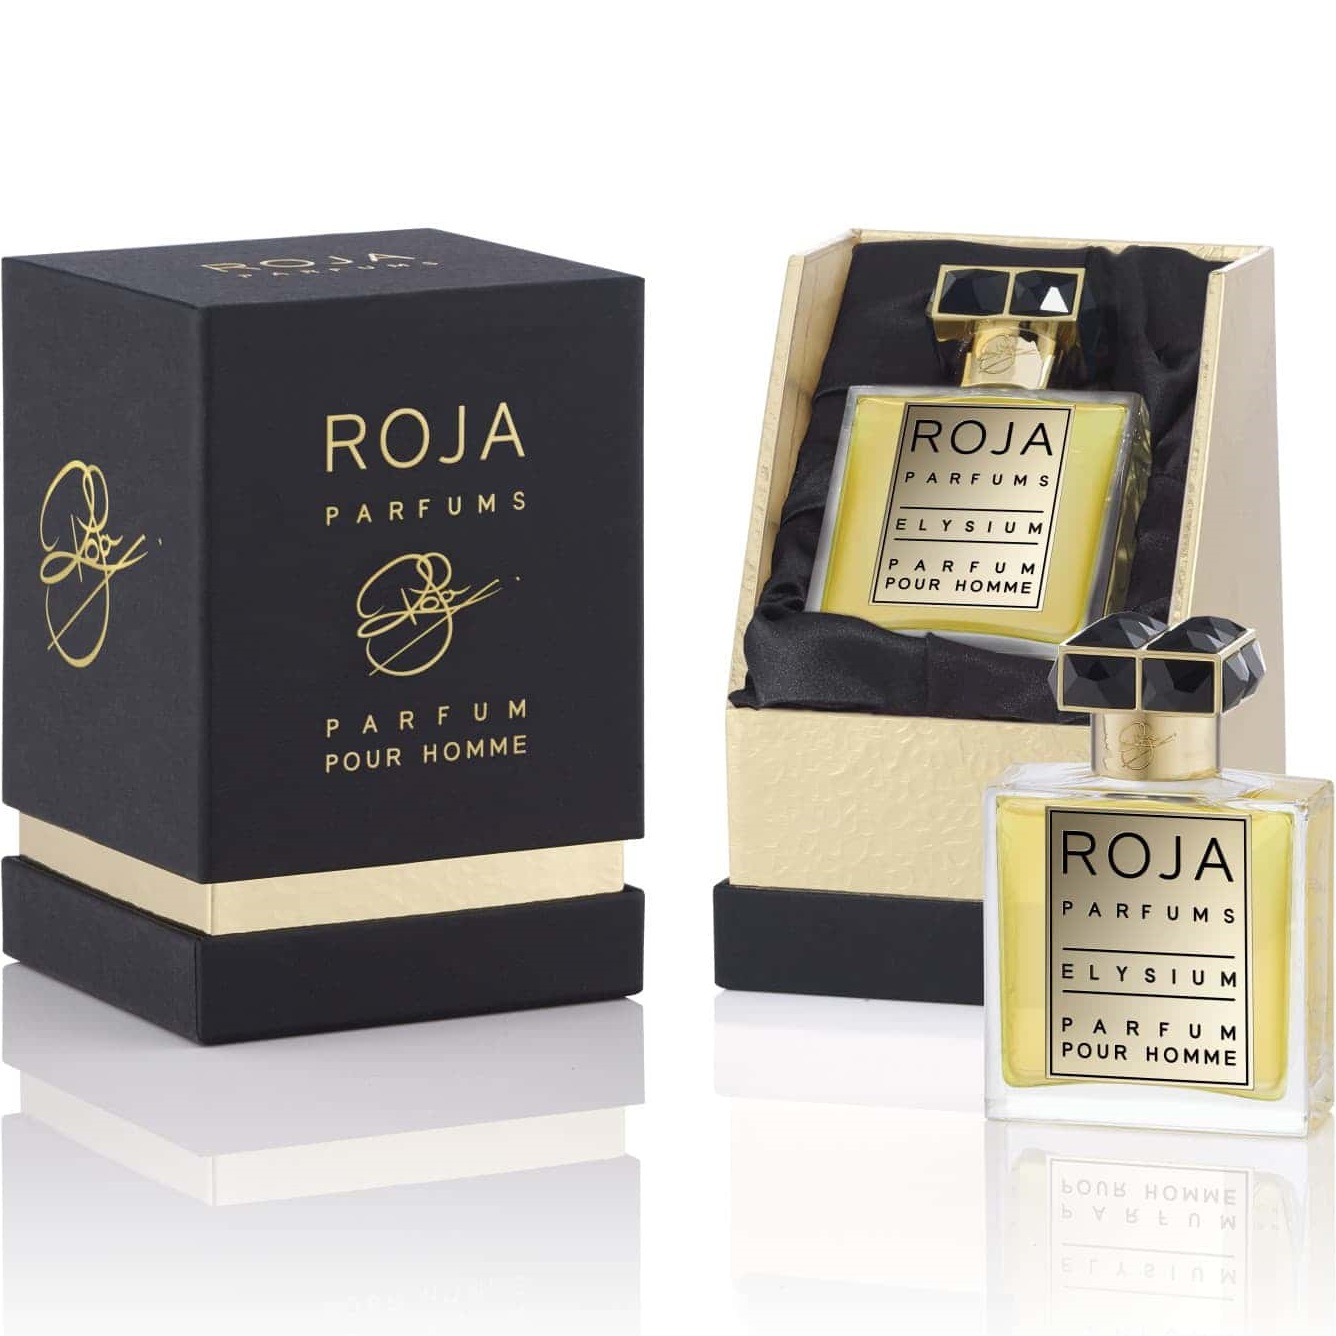 Roja Exclusive, Roja Parfums